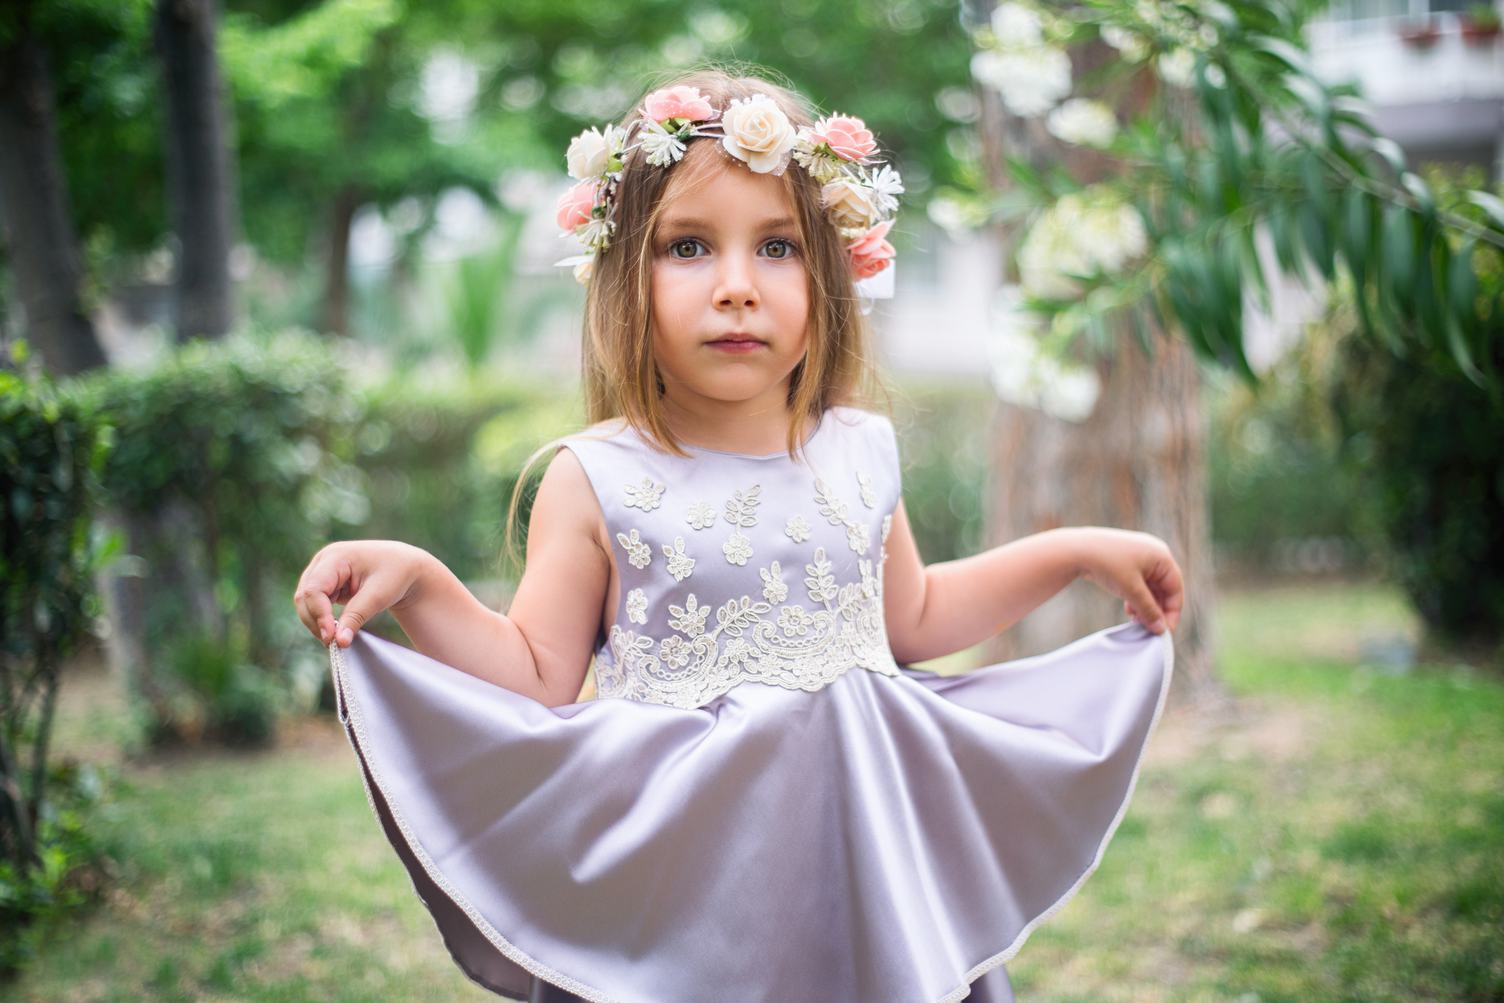 Cute Little Girl with Flower Wreath and Satin Dress